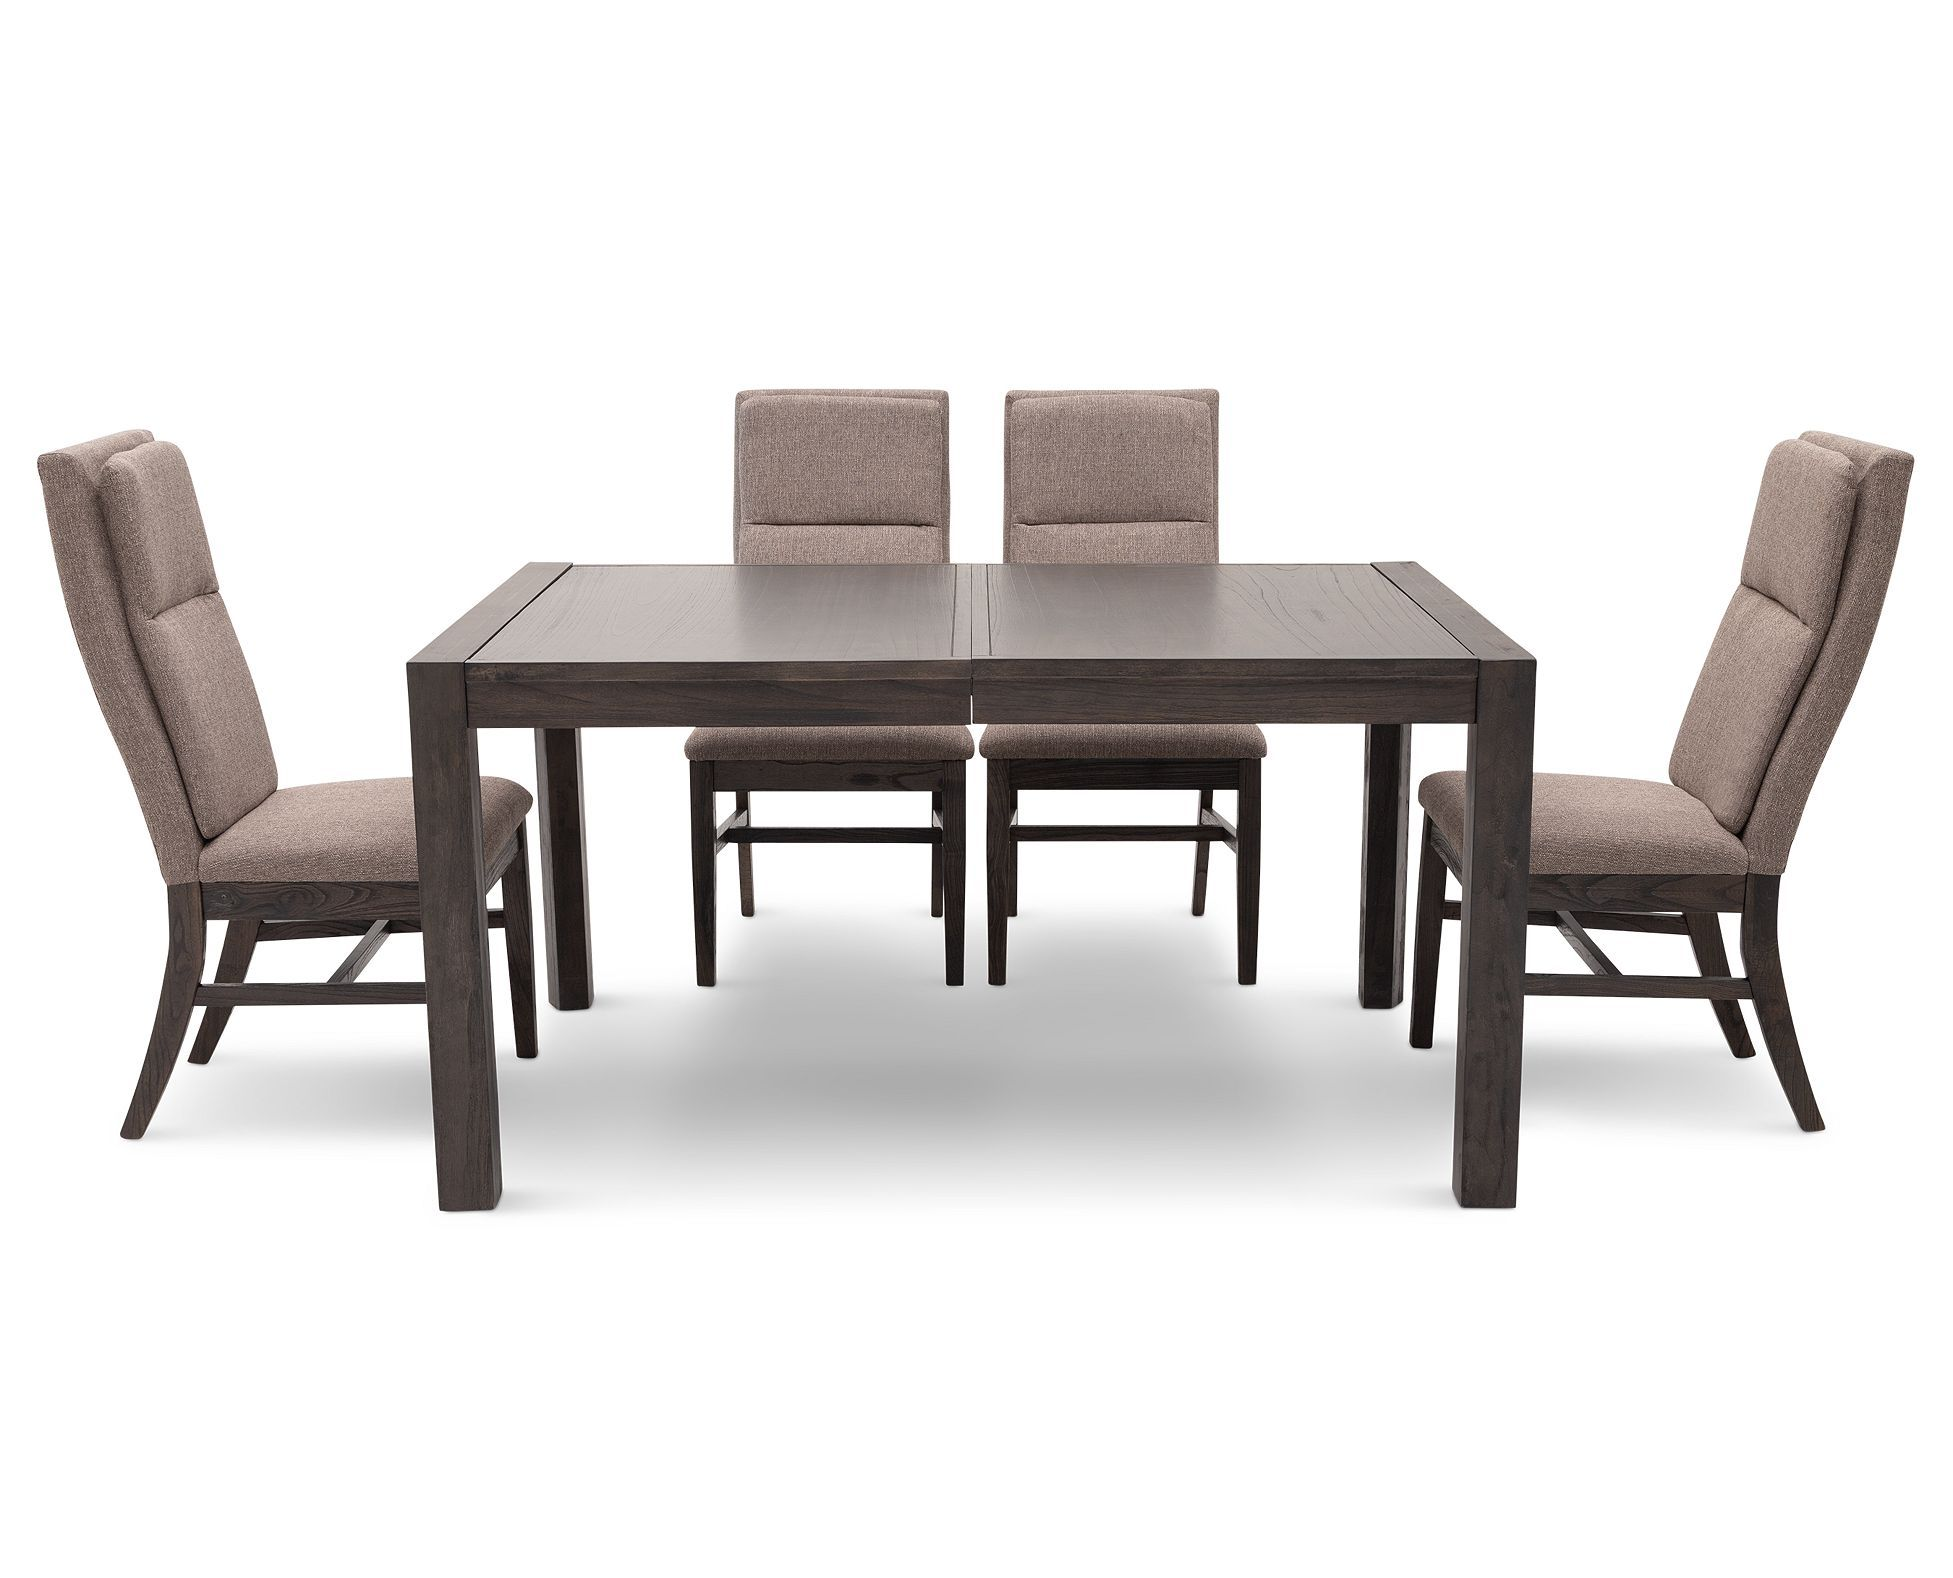 Get Clearance Pricing On The Streamlined Denmark Dining Set In